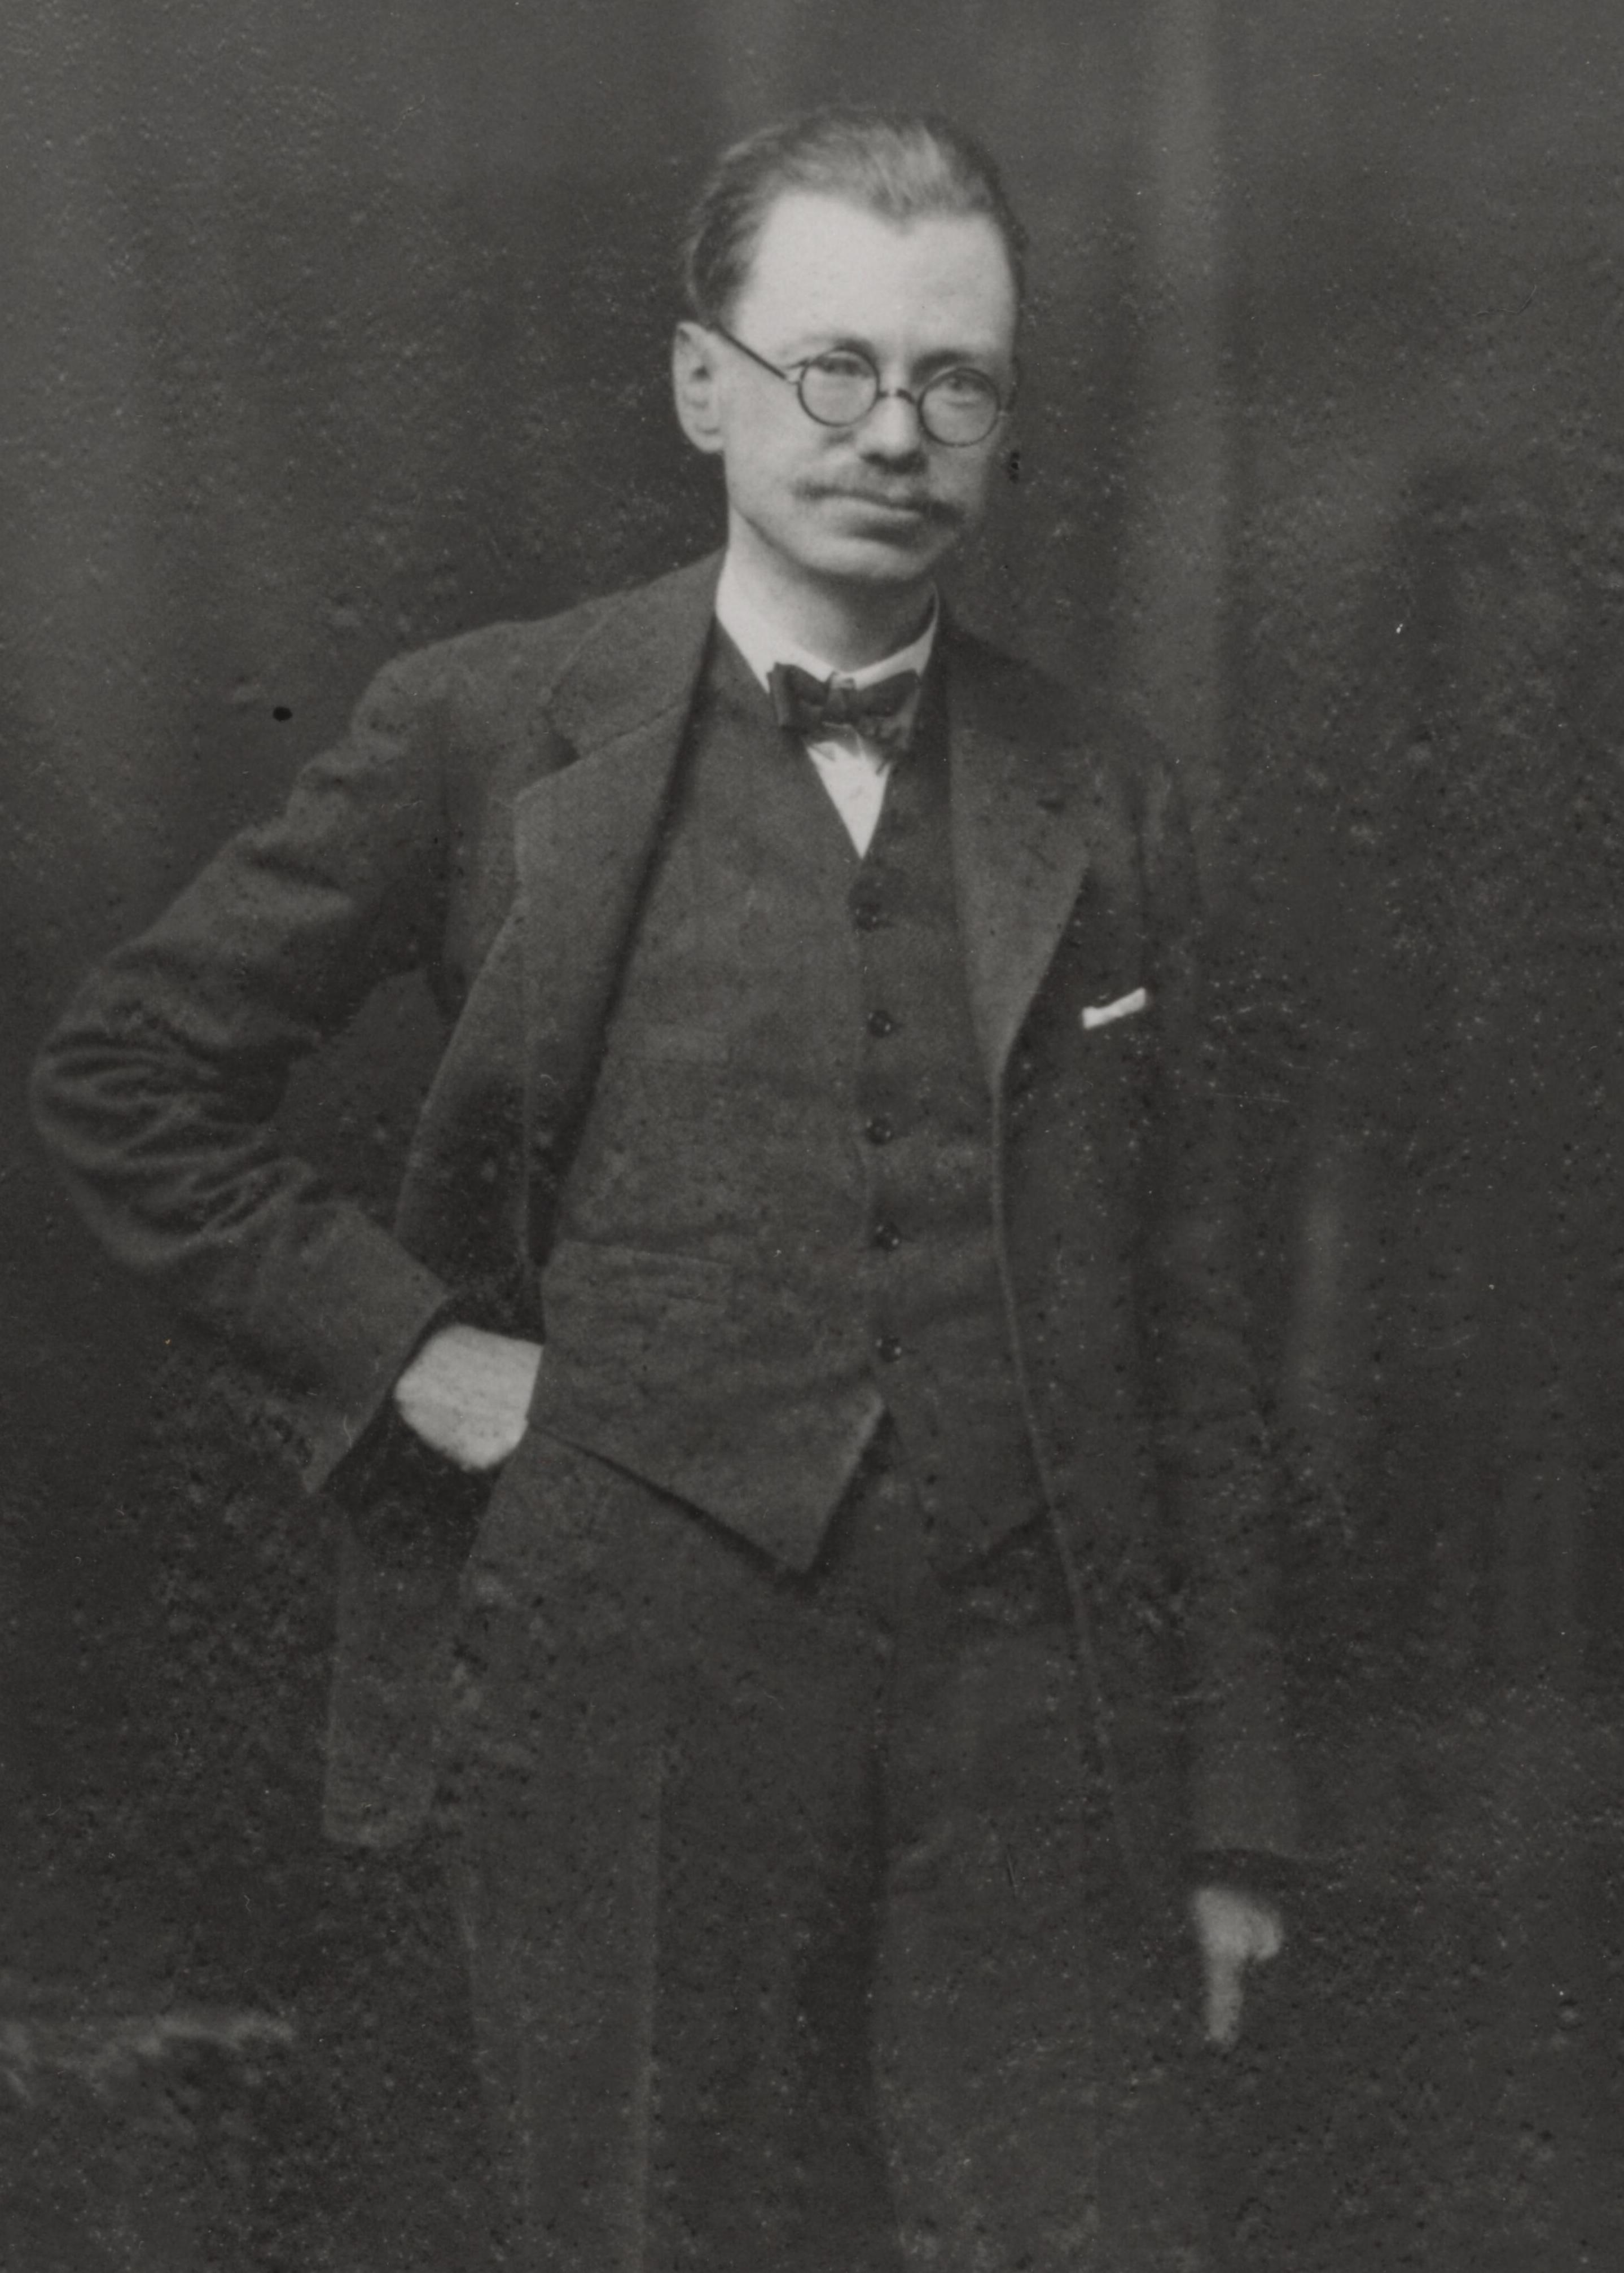 One of the 20th century's most prominent Marxist academics, the Australian archaeologist V. Gordon Childe